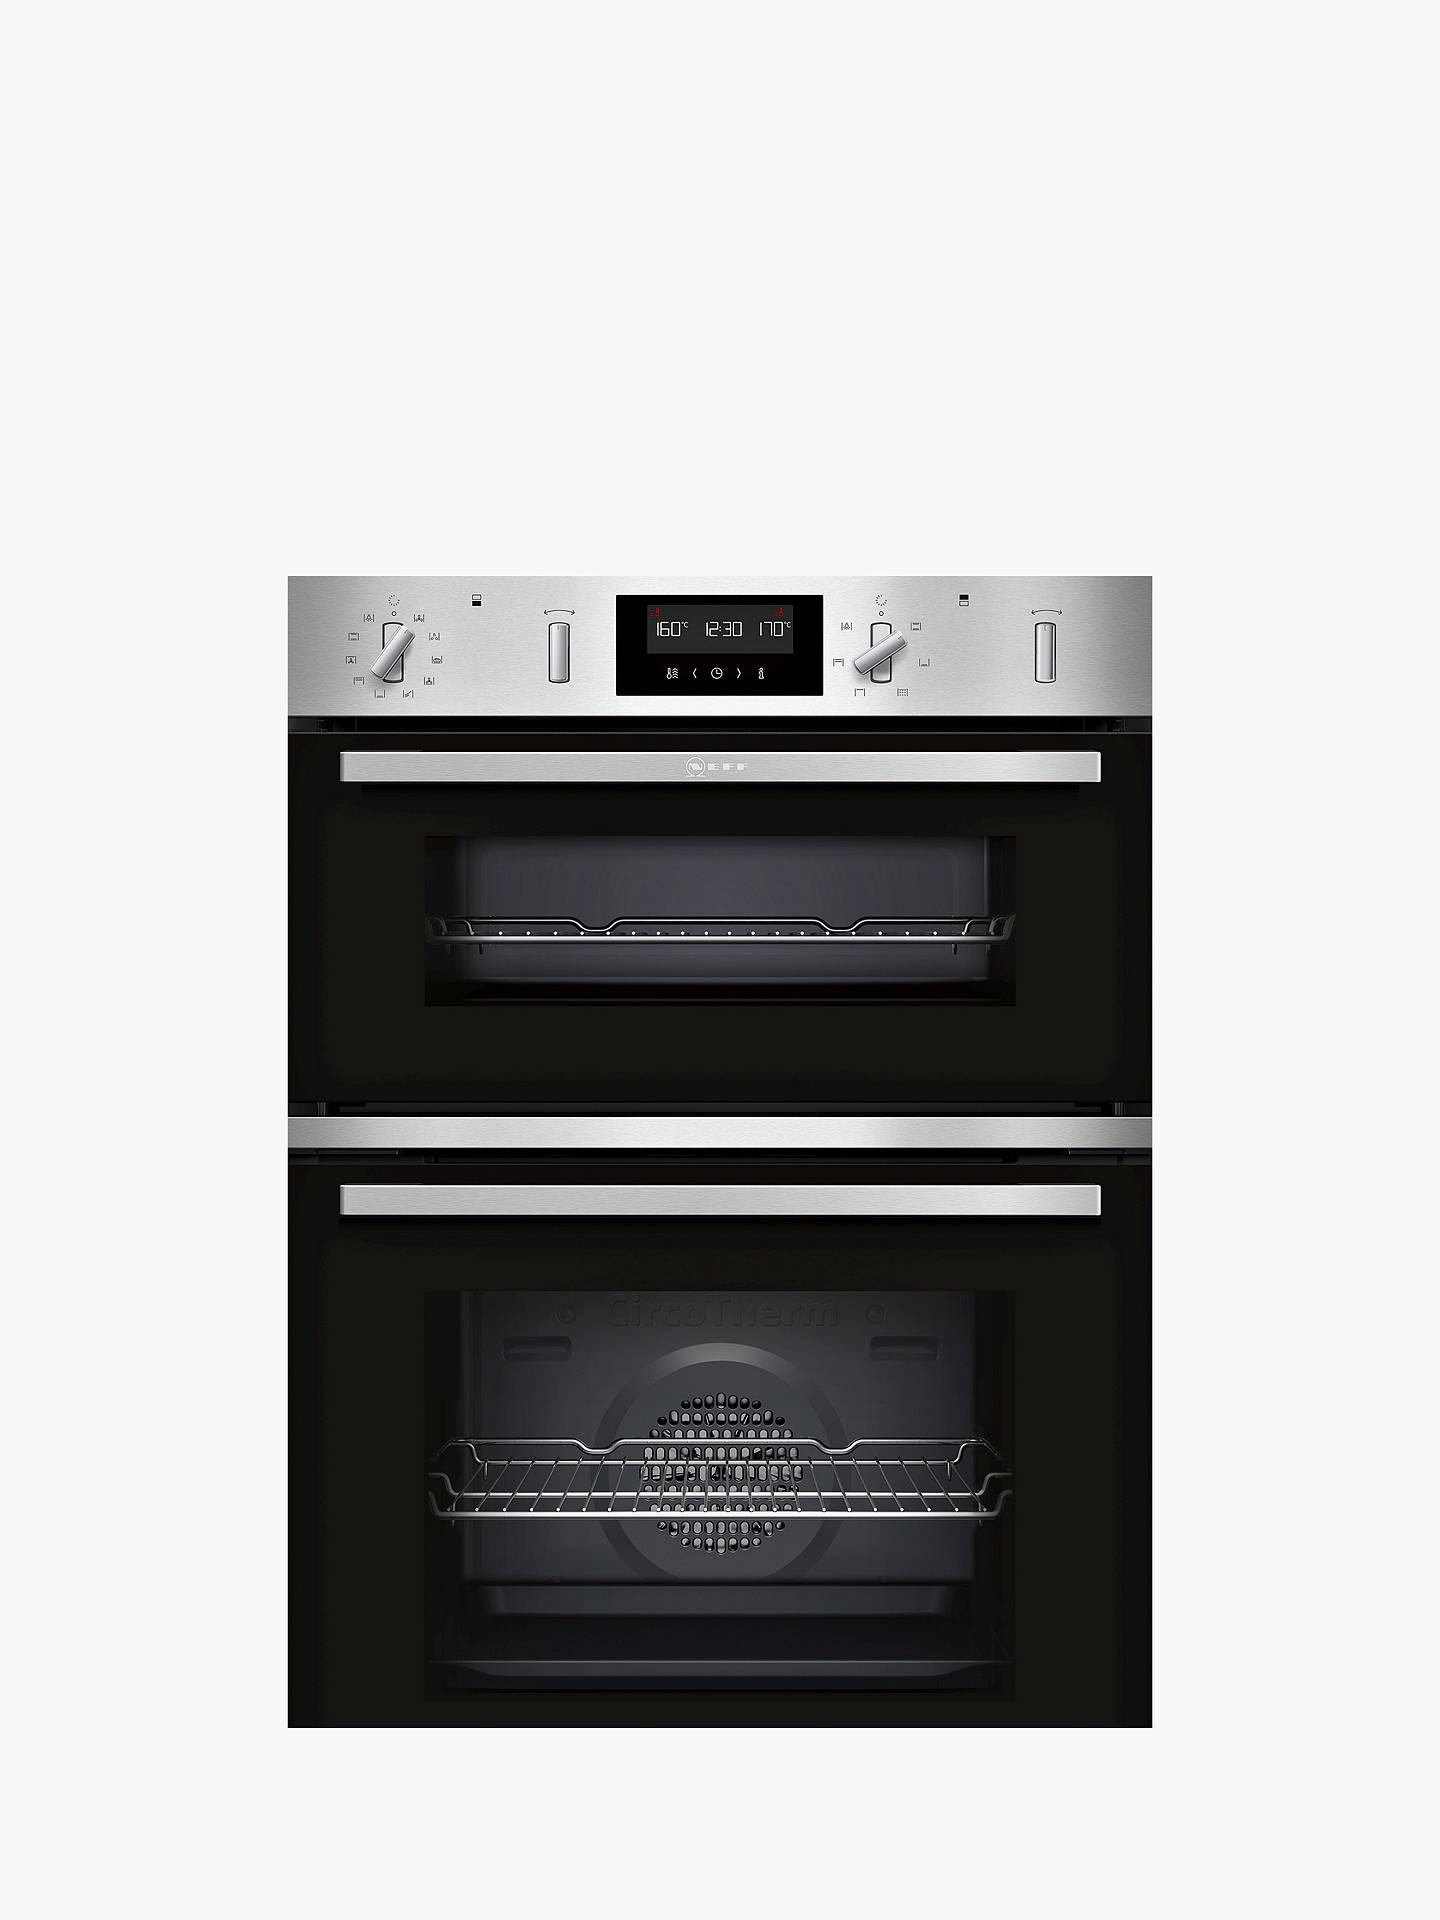 Neff U2gch7an0b Built In Self Cleaning Double Electric Oven Ab Energy Rating Stainless Steel